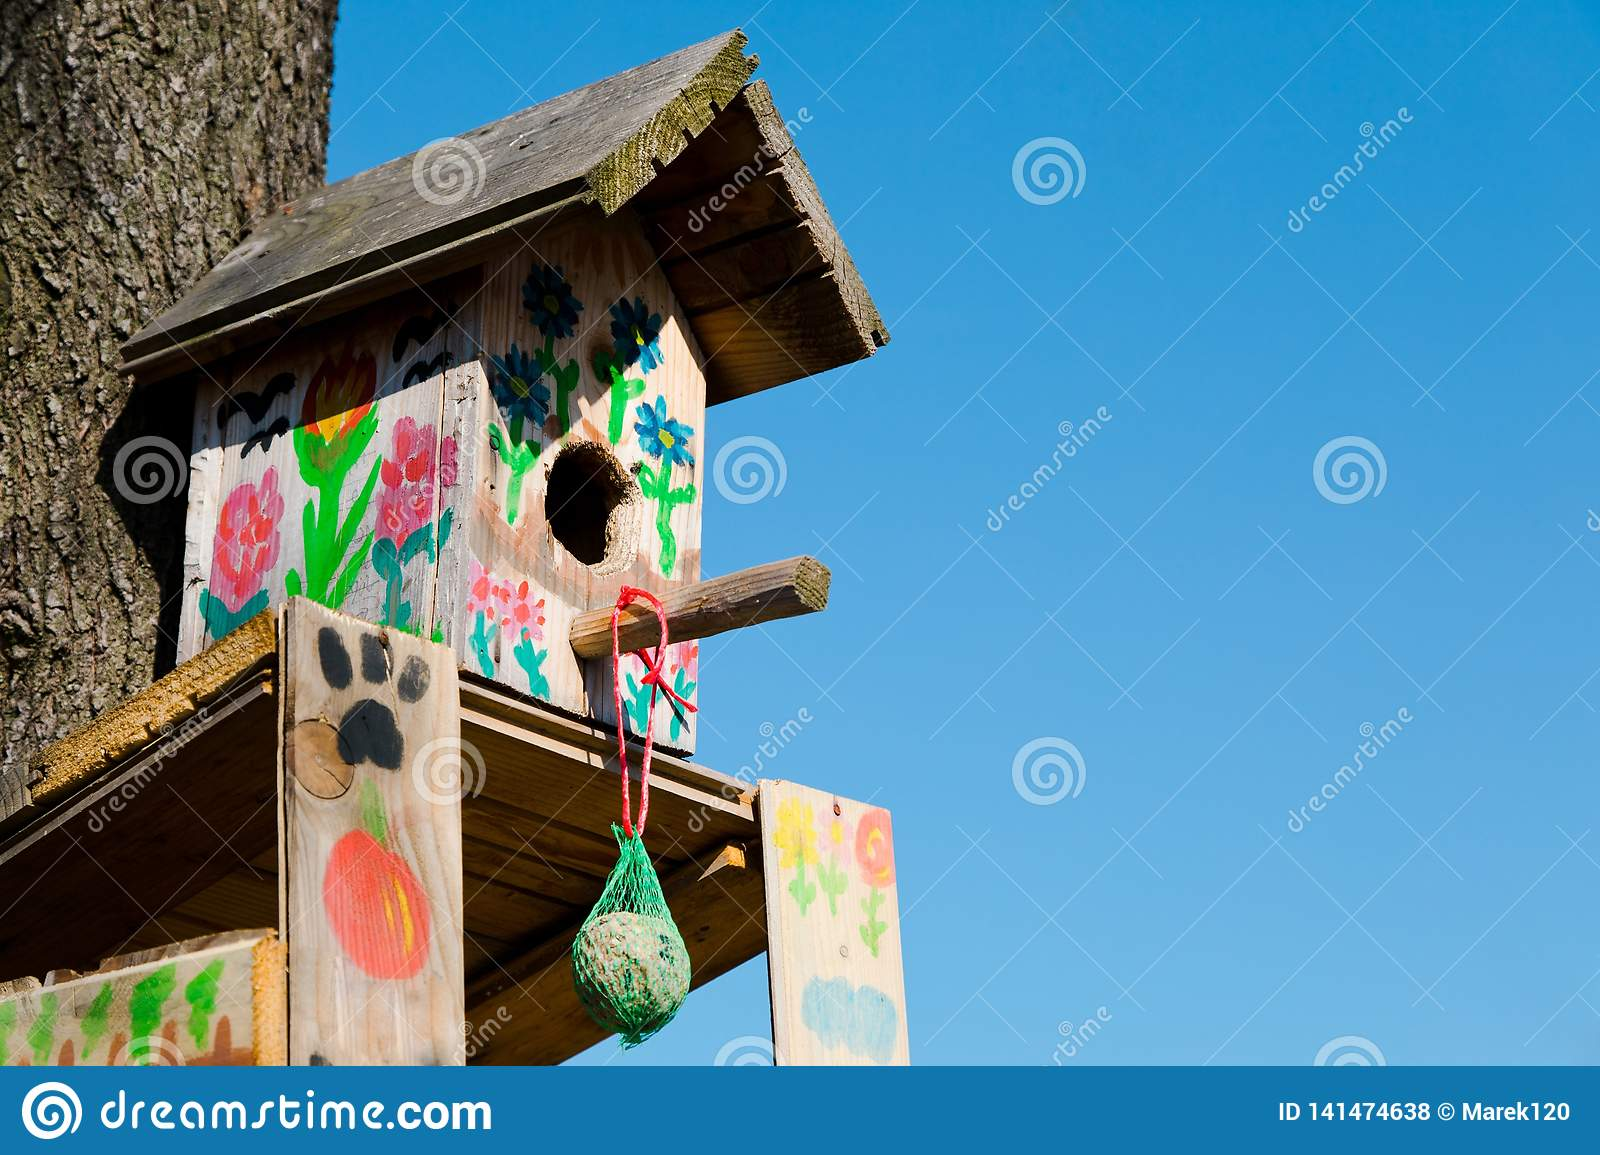 Handmade bird booth decorated - Place to feed birds during winte